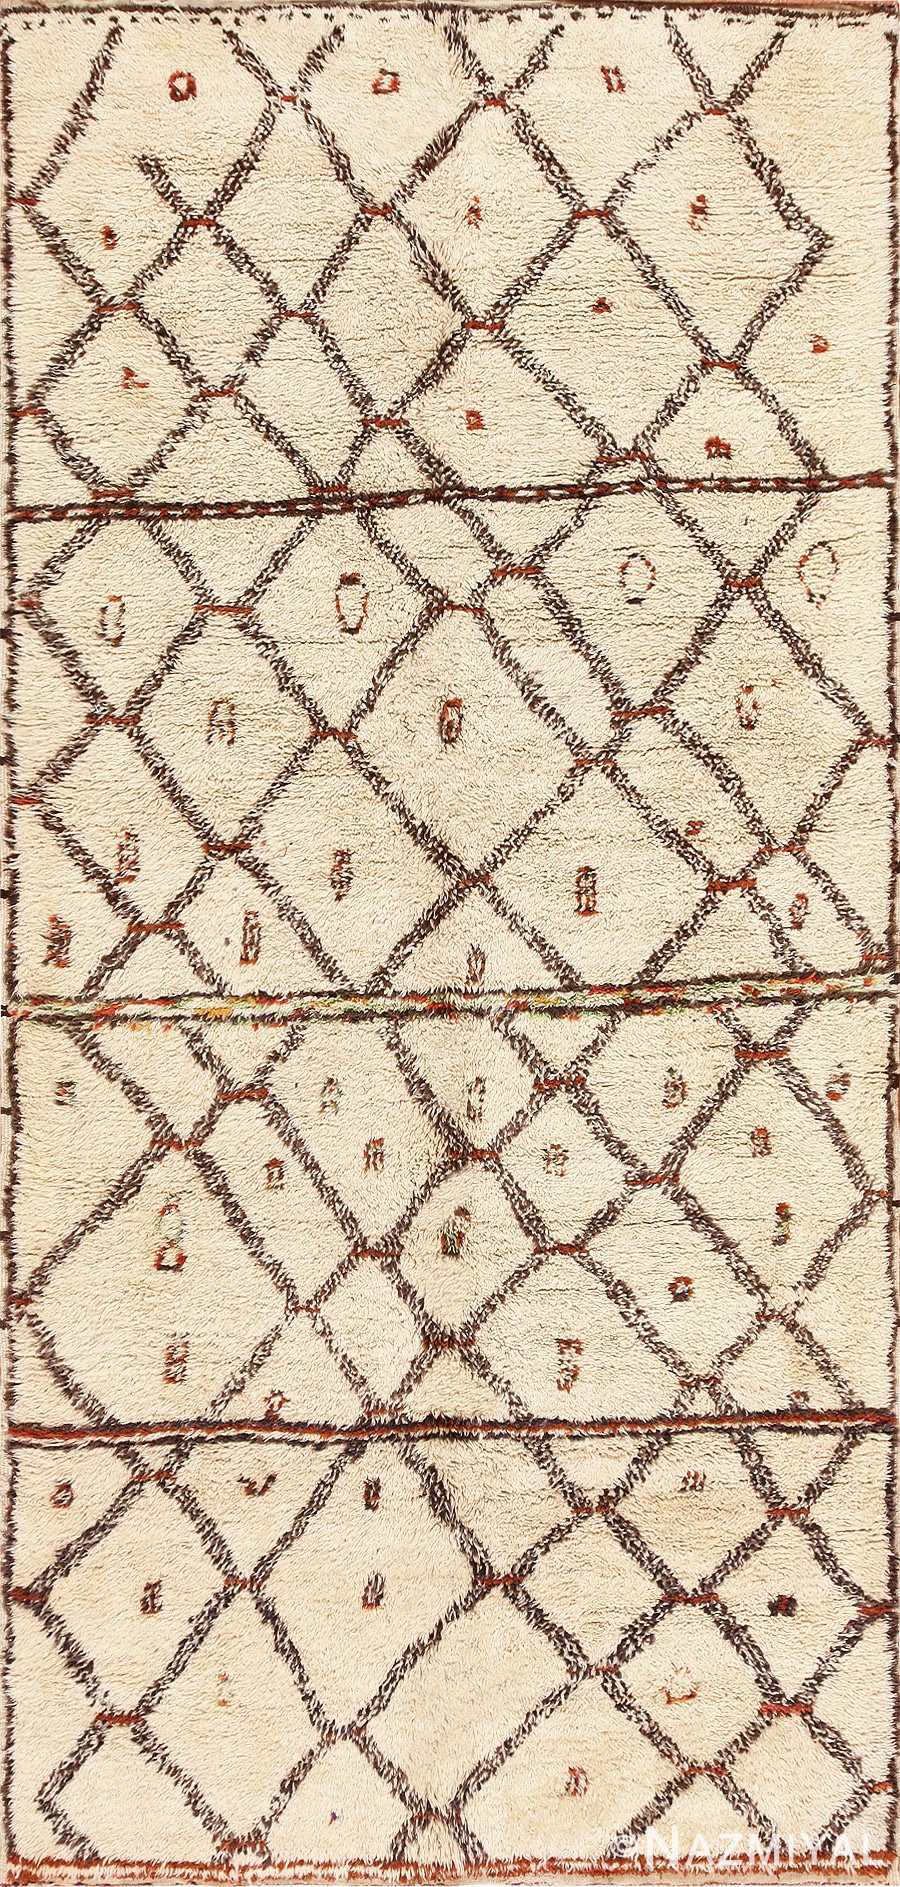 Ivory Vintage Moroccan Rug 47931 from Nazmiyal Antique Rugs in NYC